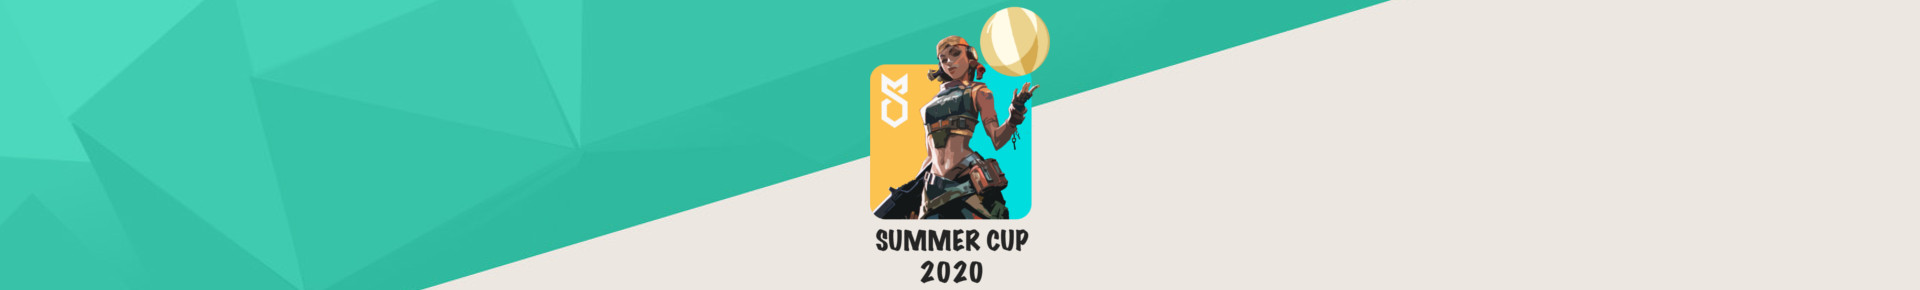 30Bomb Summer Cup